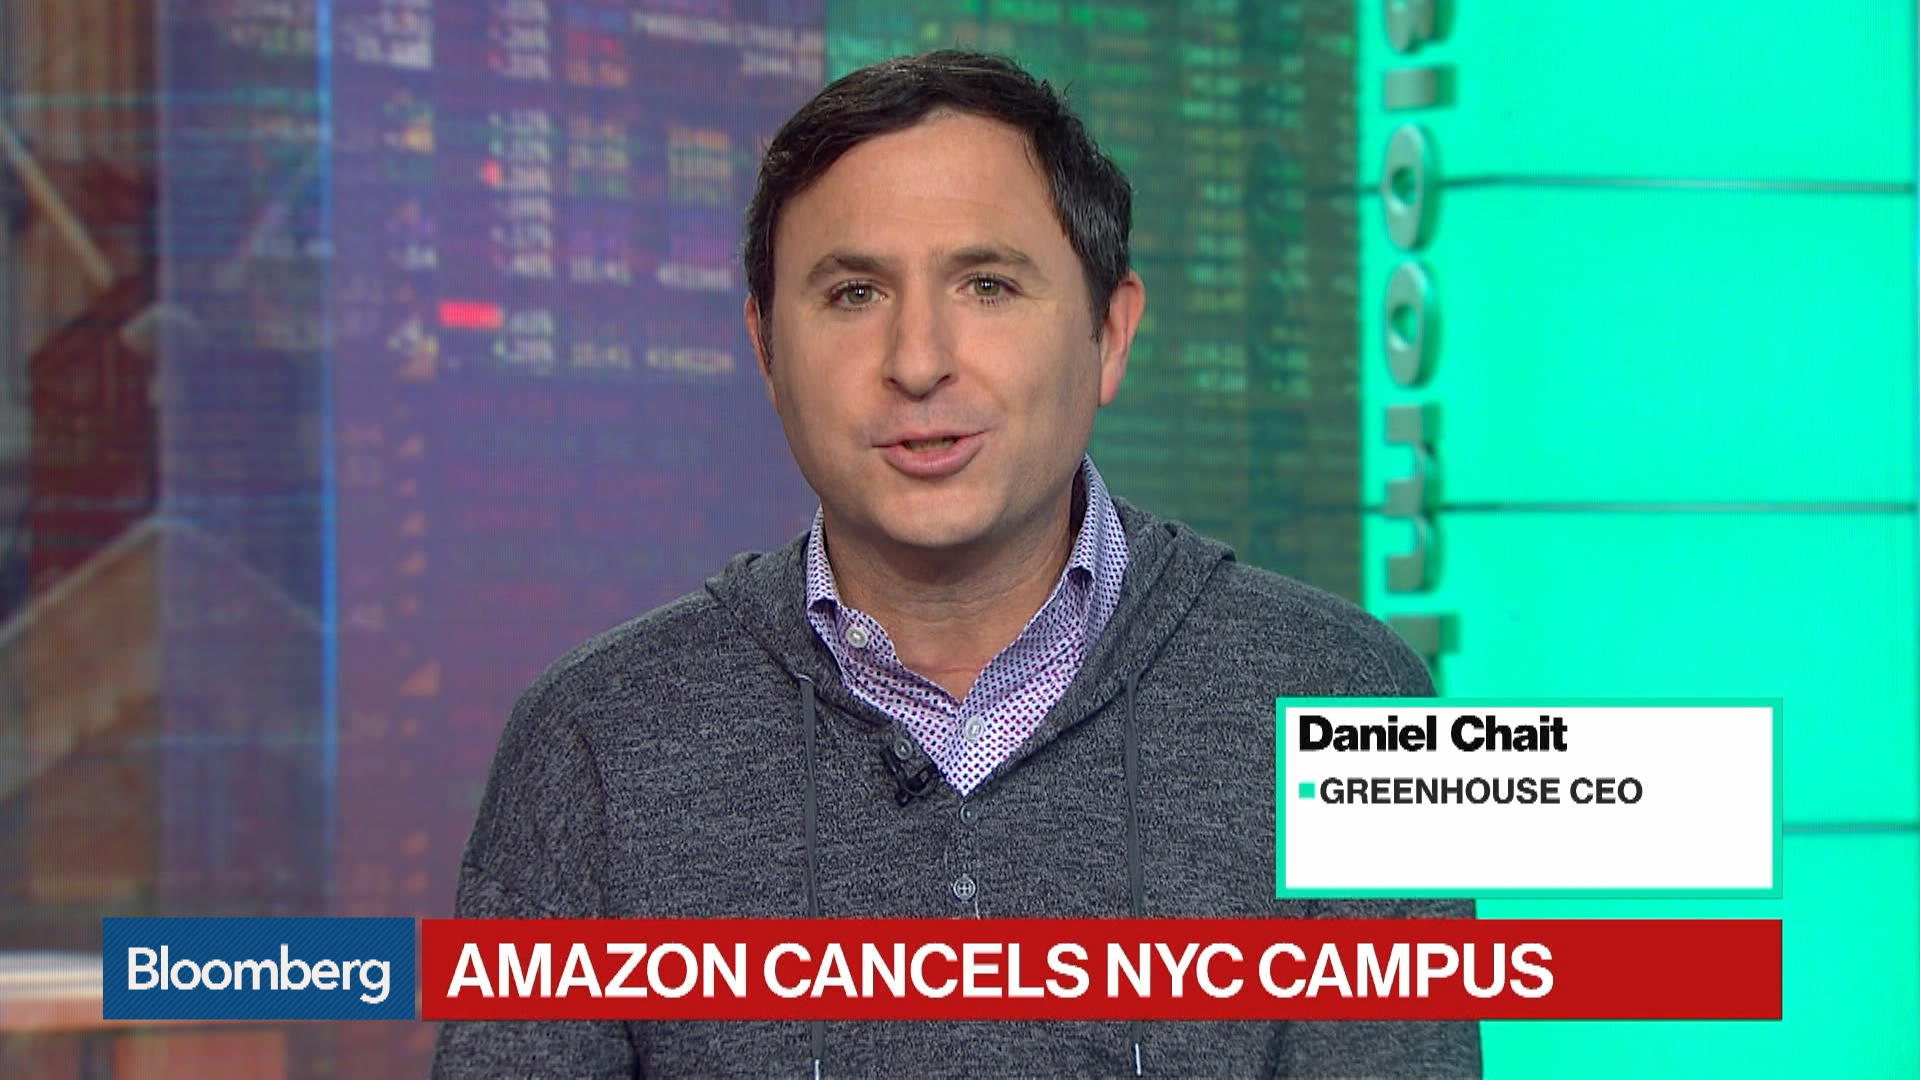 Greenhouse CEO Hopes Amazon's HQ2 Decision Isn't the Start of a Trend